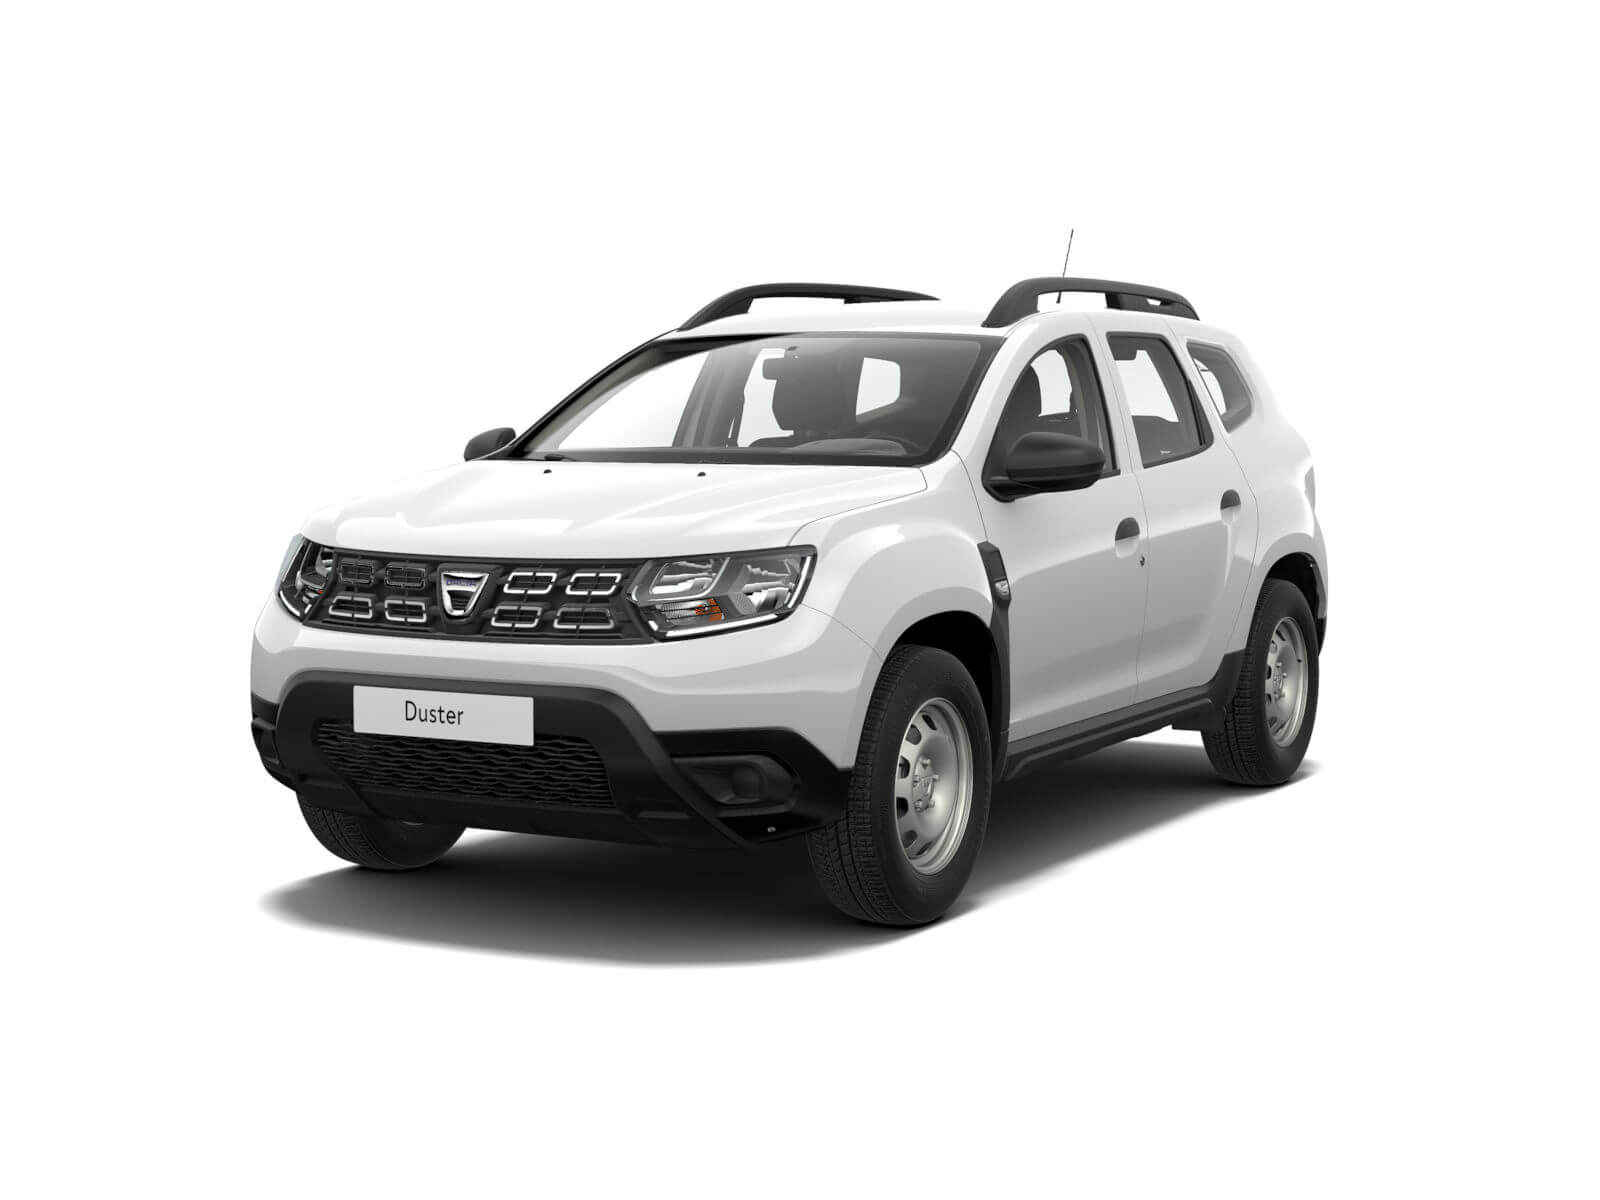 Renault Duster – Ледниковобял